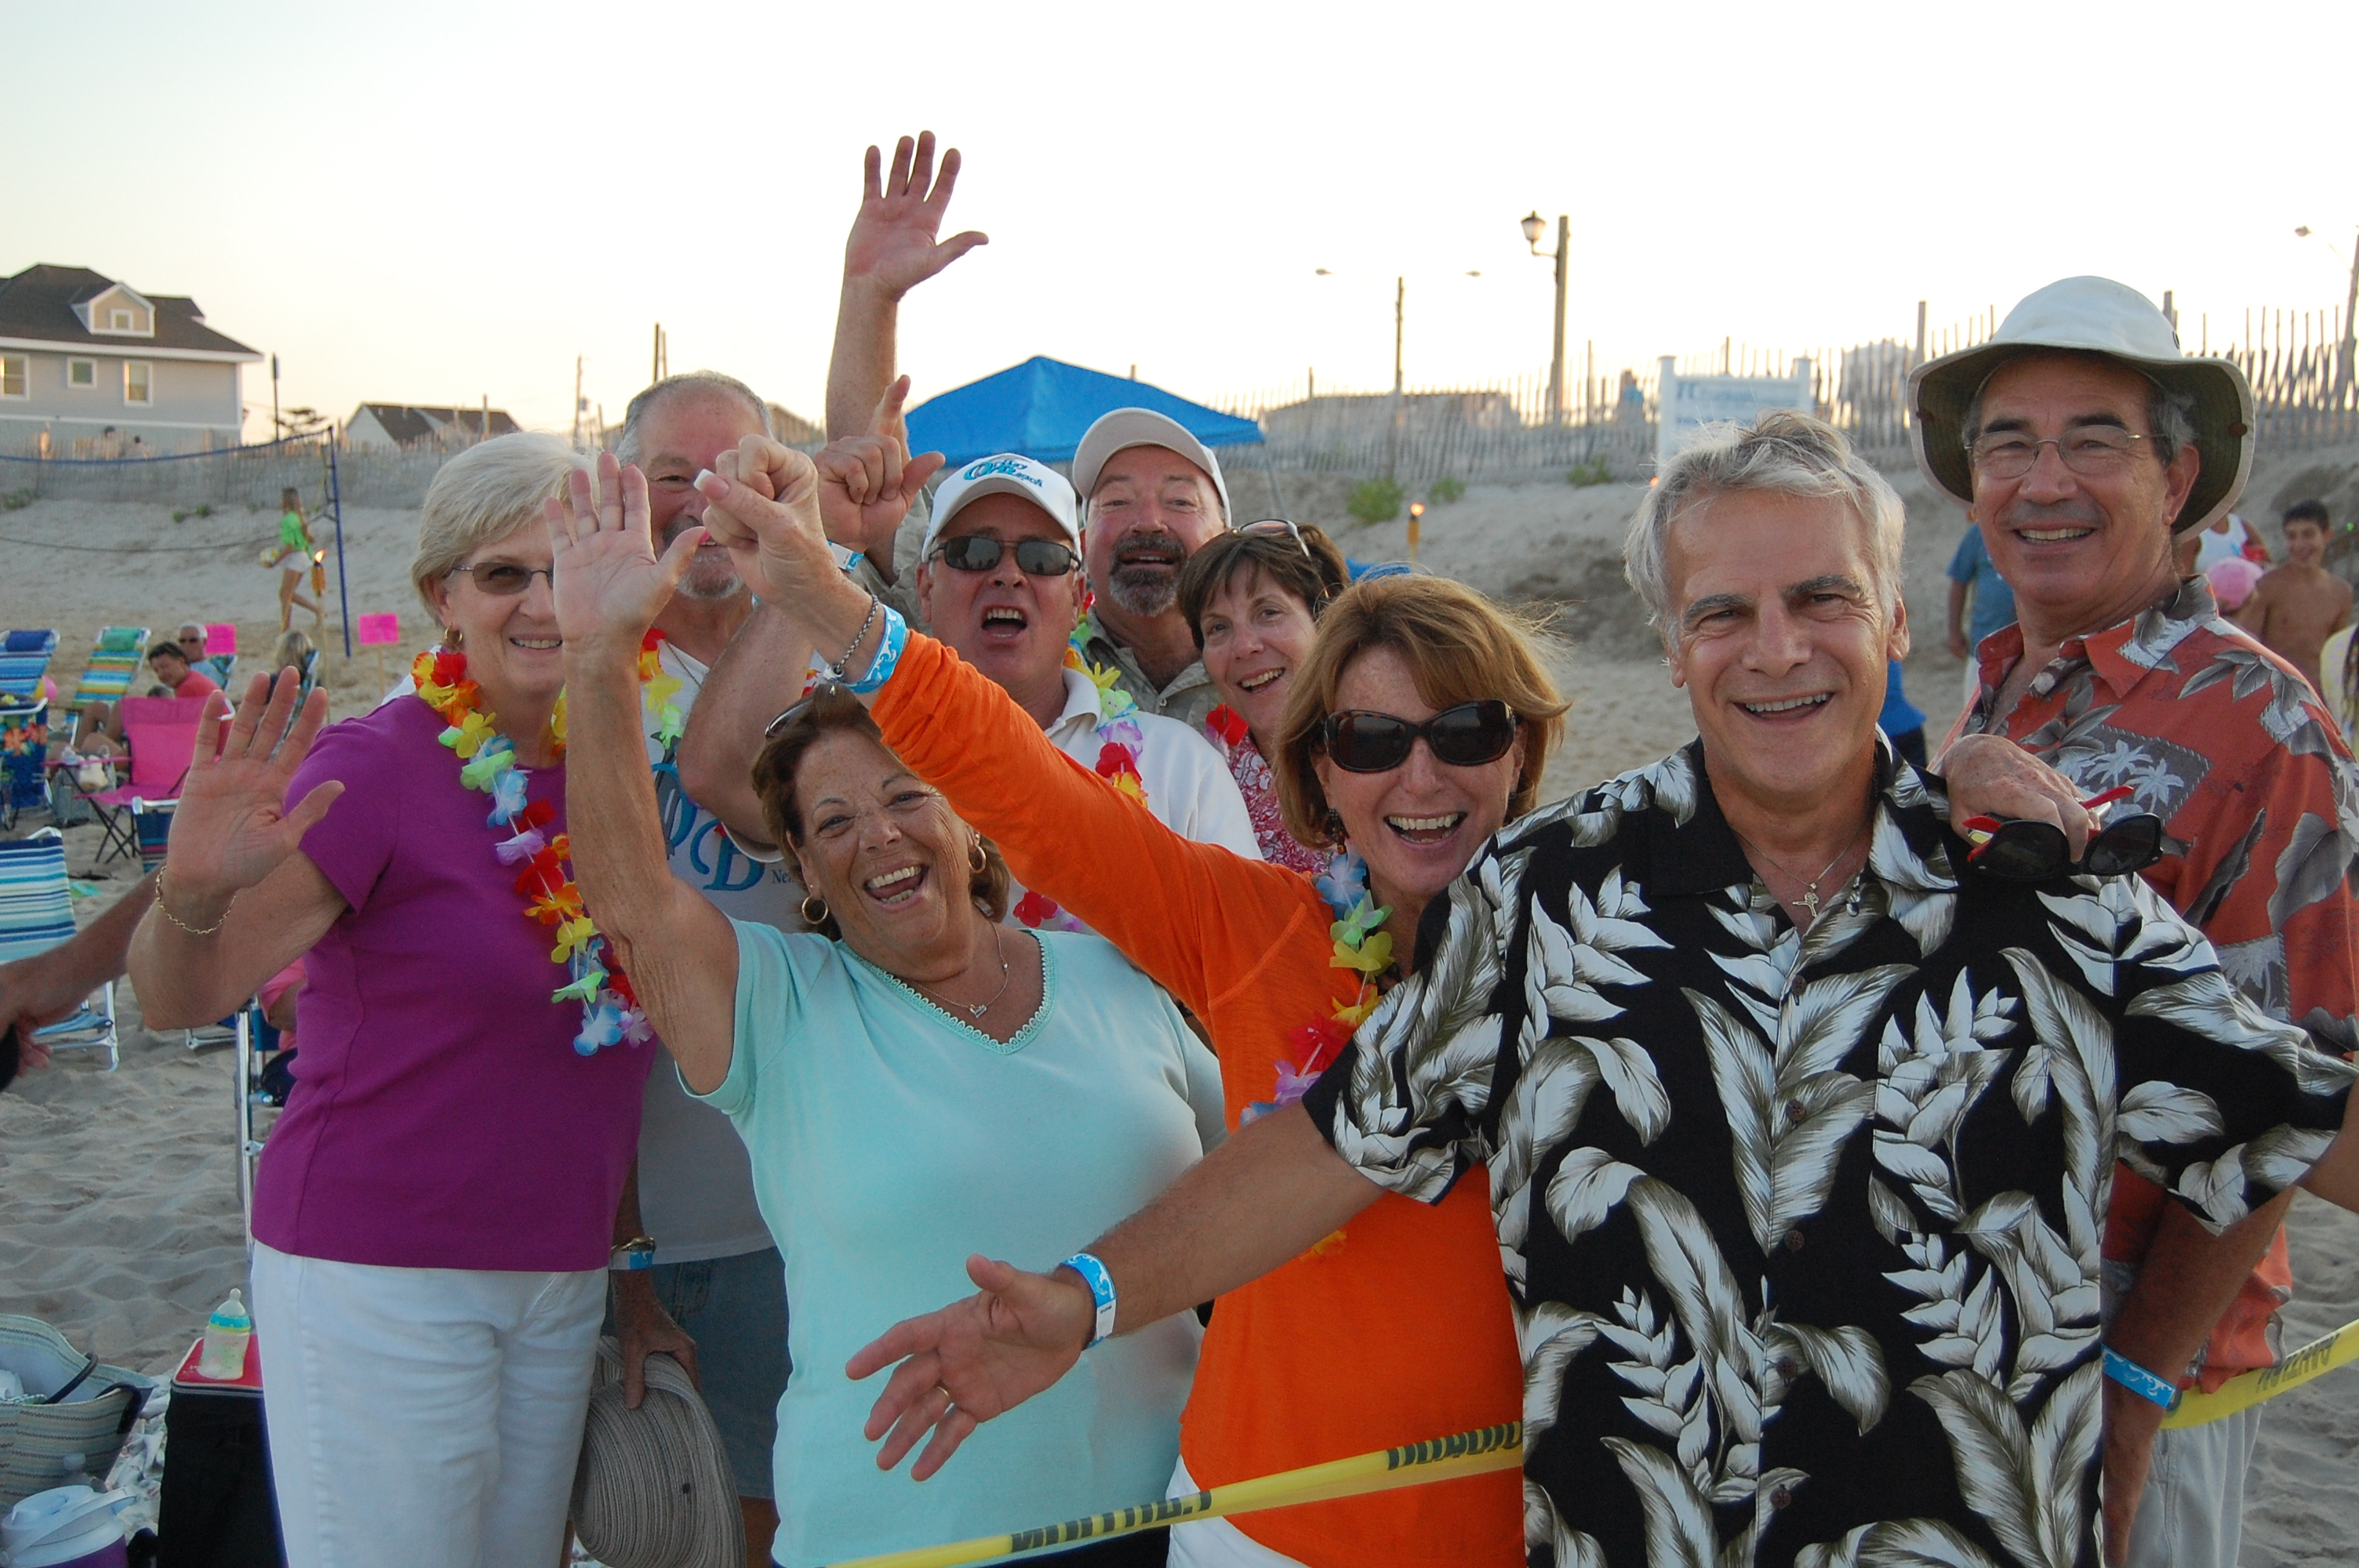 """Friends from Ortley Beach gathered Saturday for the first """"Beach Jam"""" event Saturday. (Photo: Daniel Nee)"""